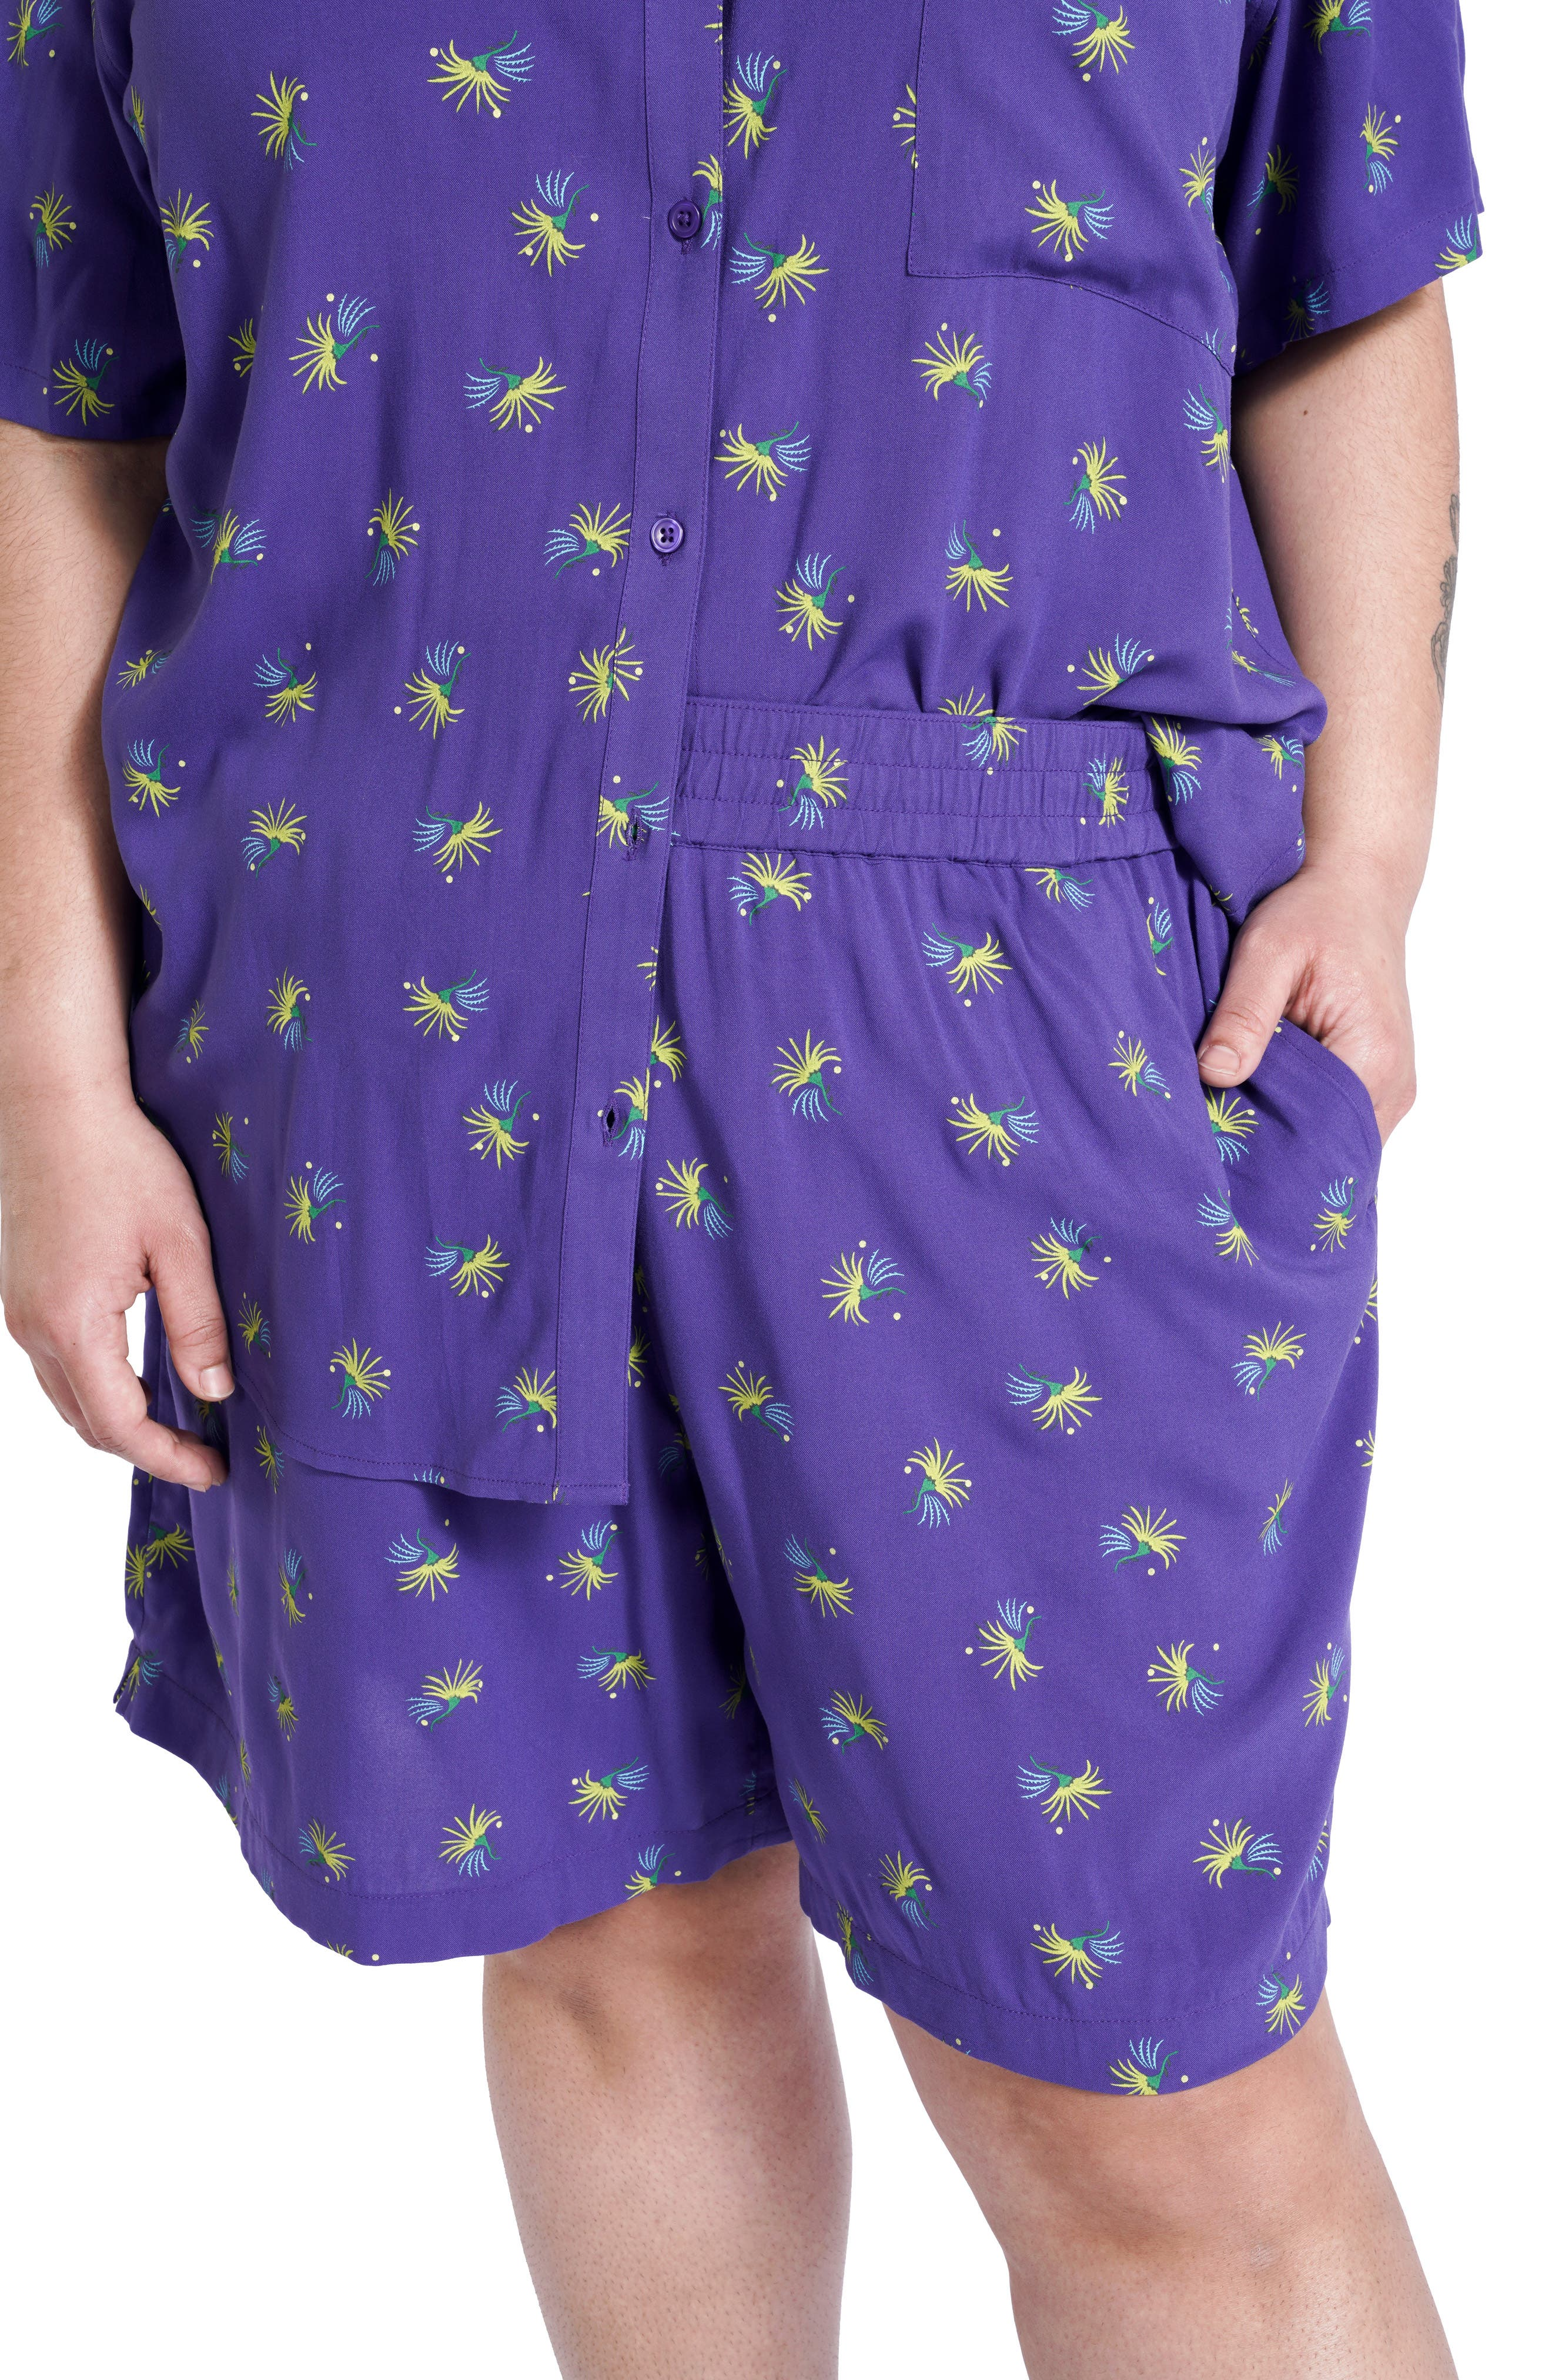 Plus Size Women's Bp. + Wildfang Relaxed Elastic Waist Shorts